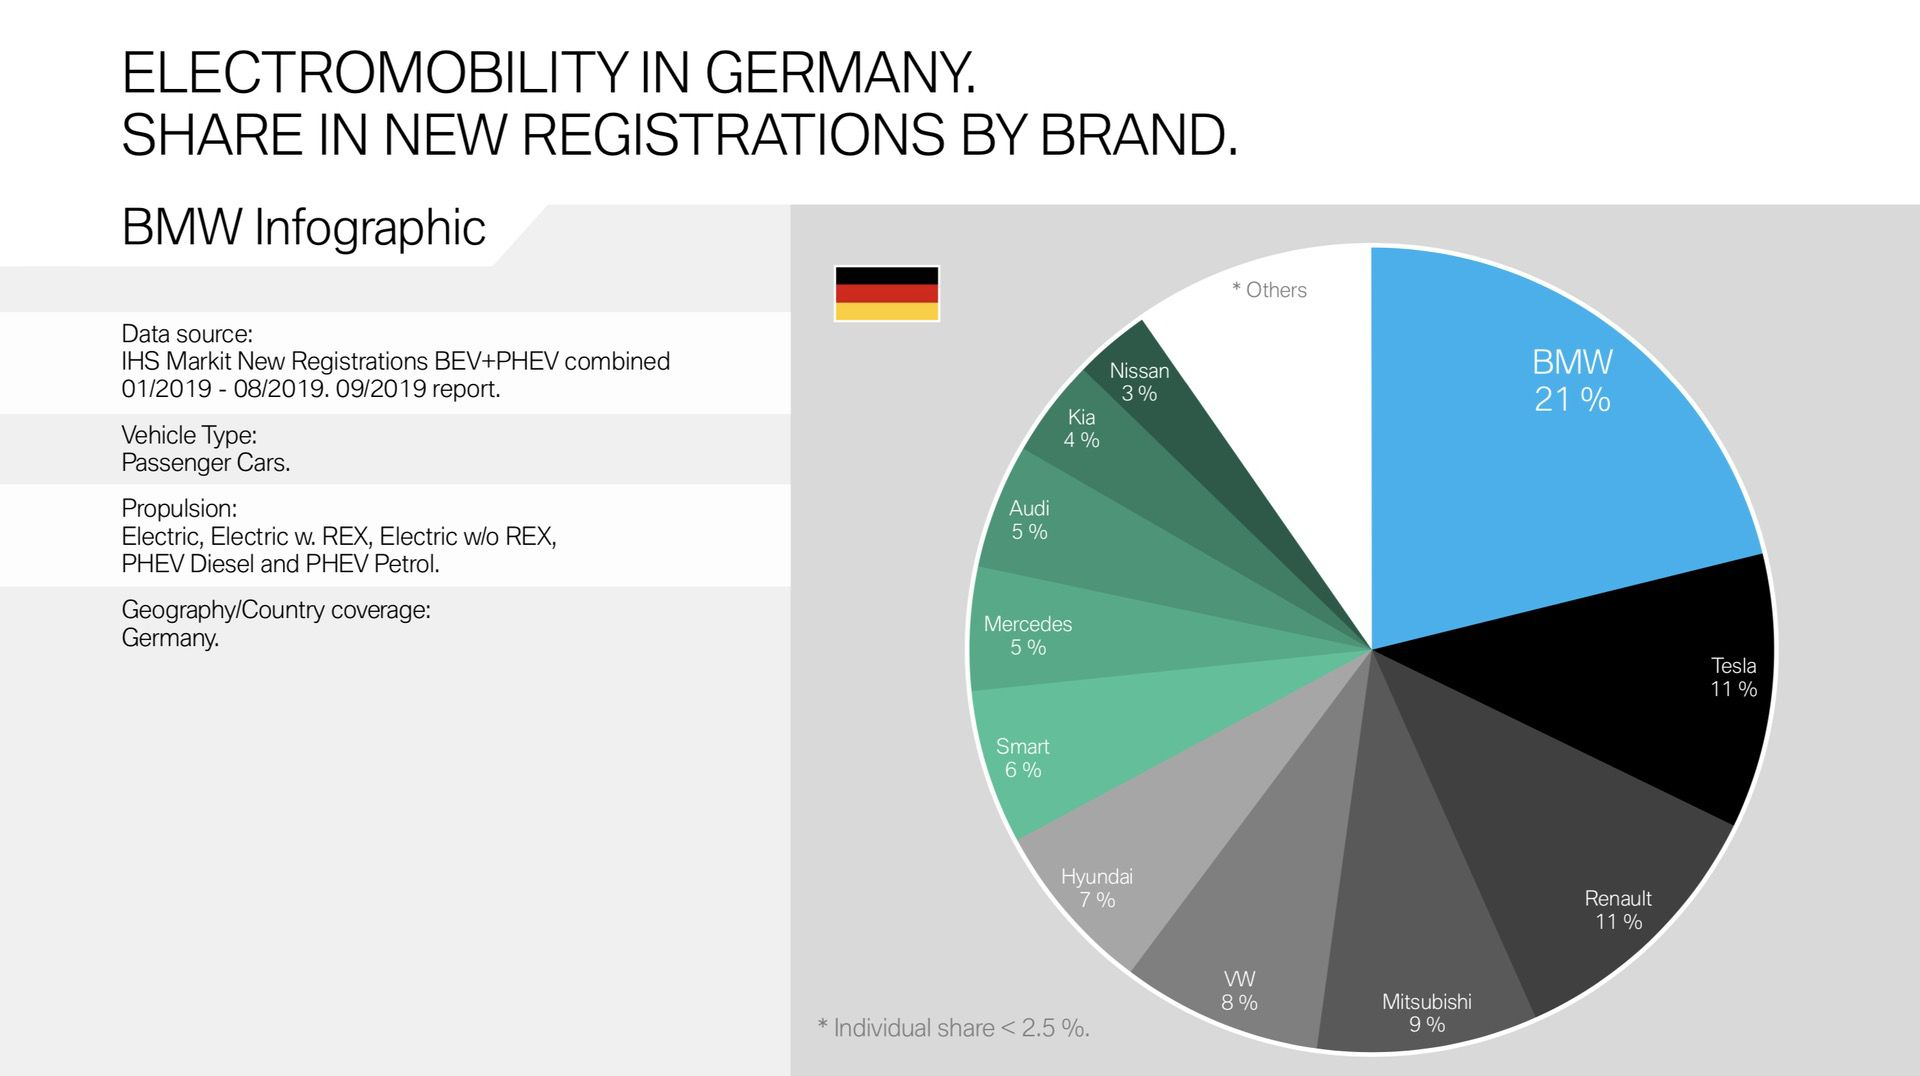 September 2019: BMW has 21% market share in Germany for BEV and PHEV